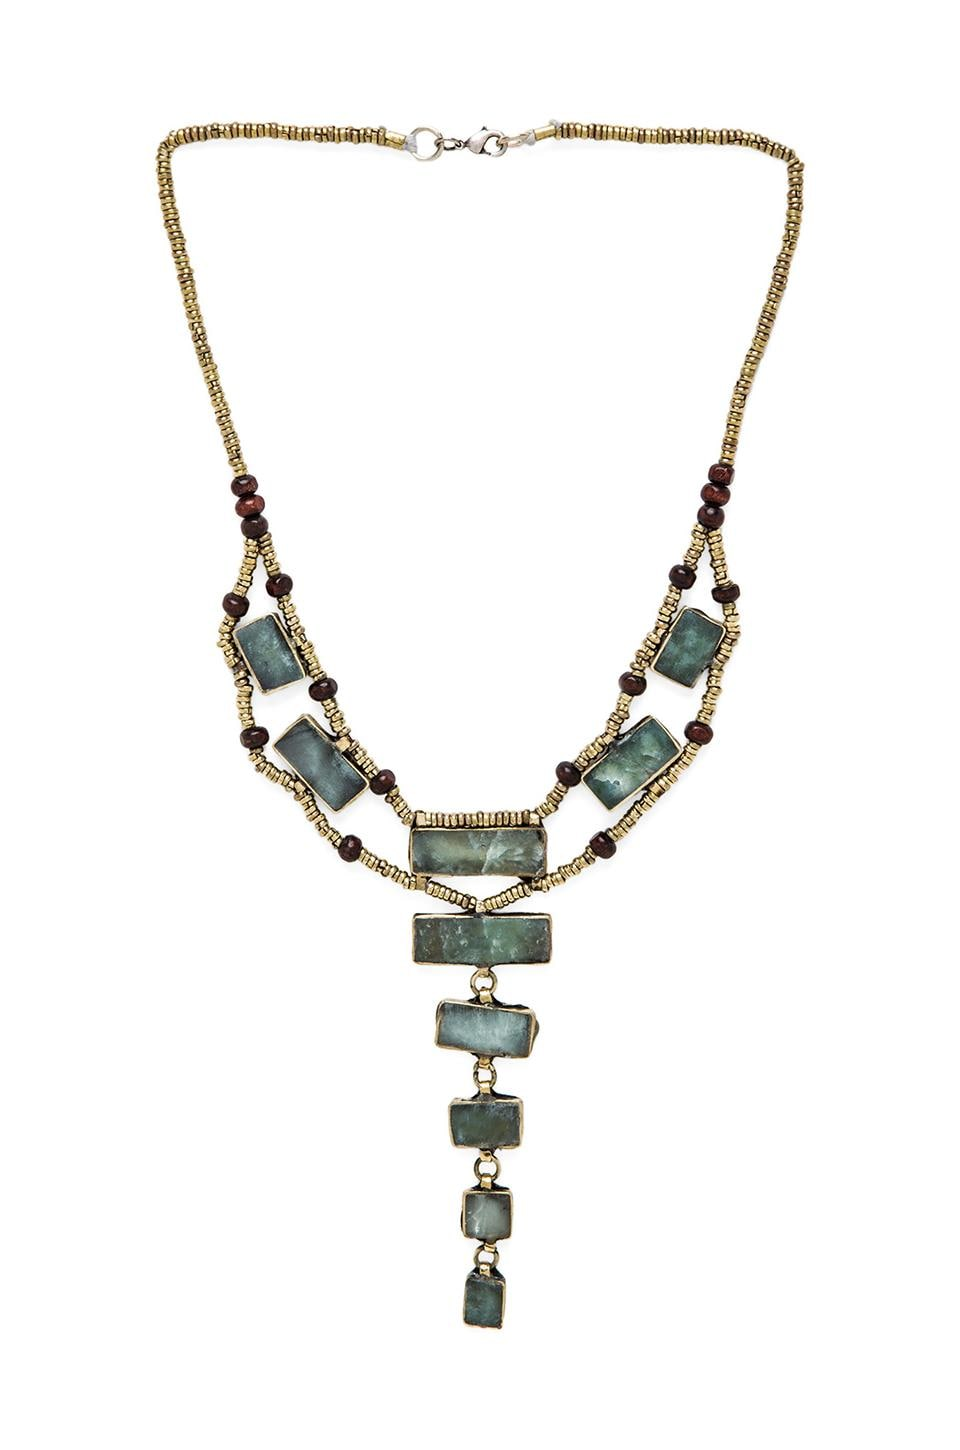 Natalie B Jewelry The Ladder Necklace in Moss